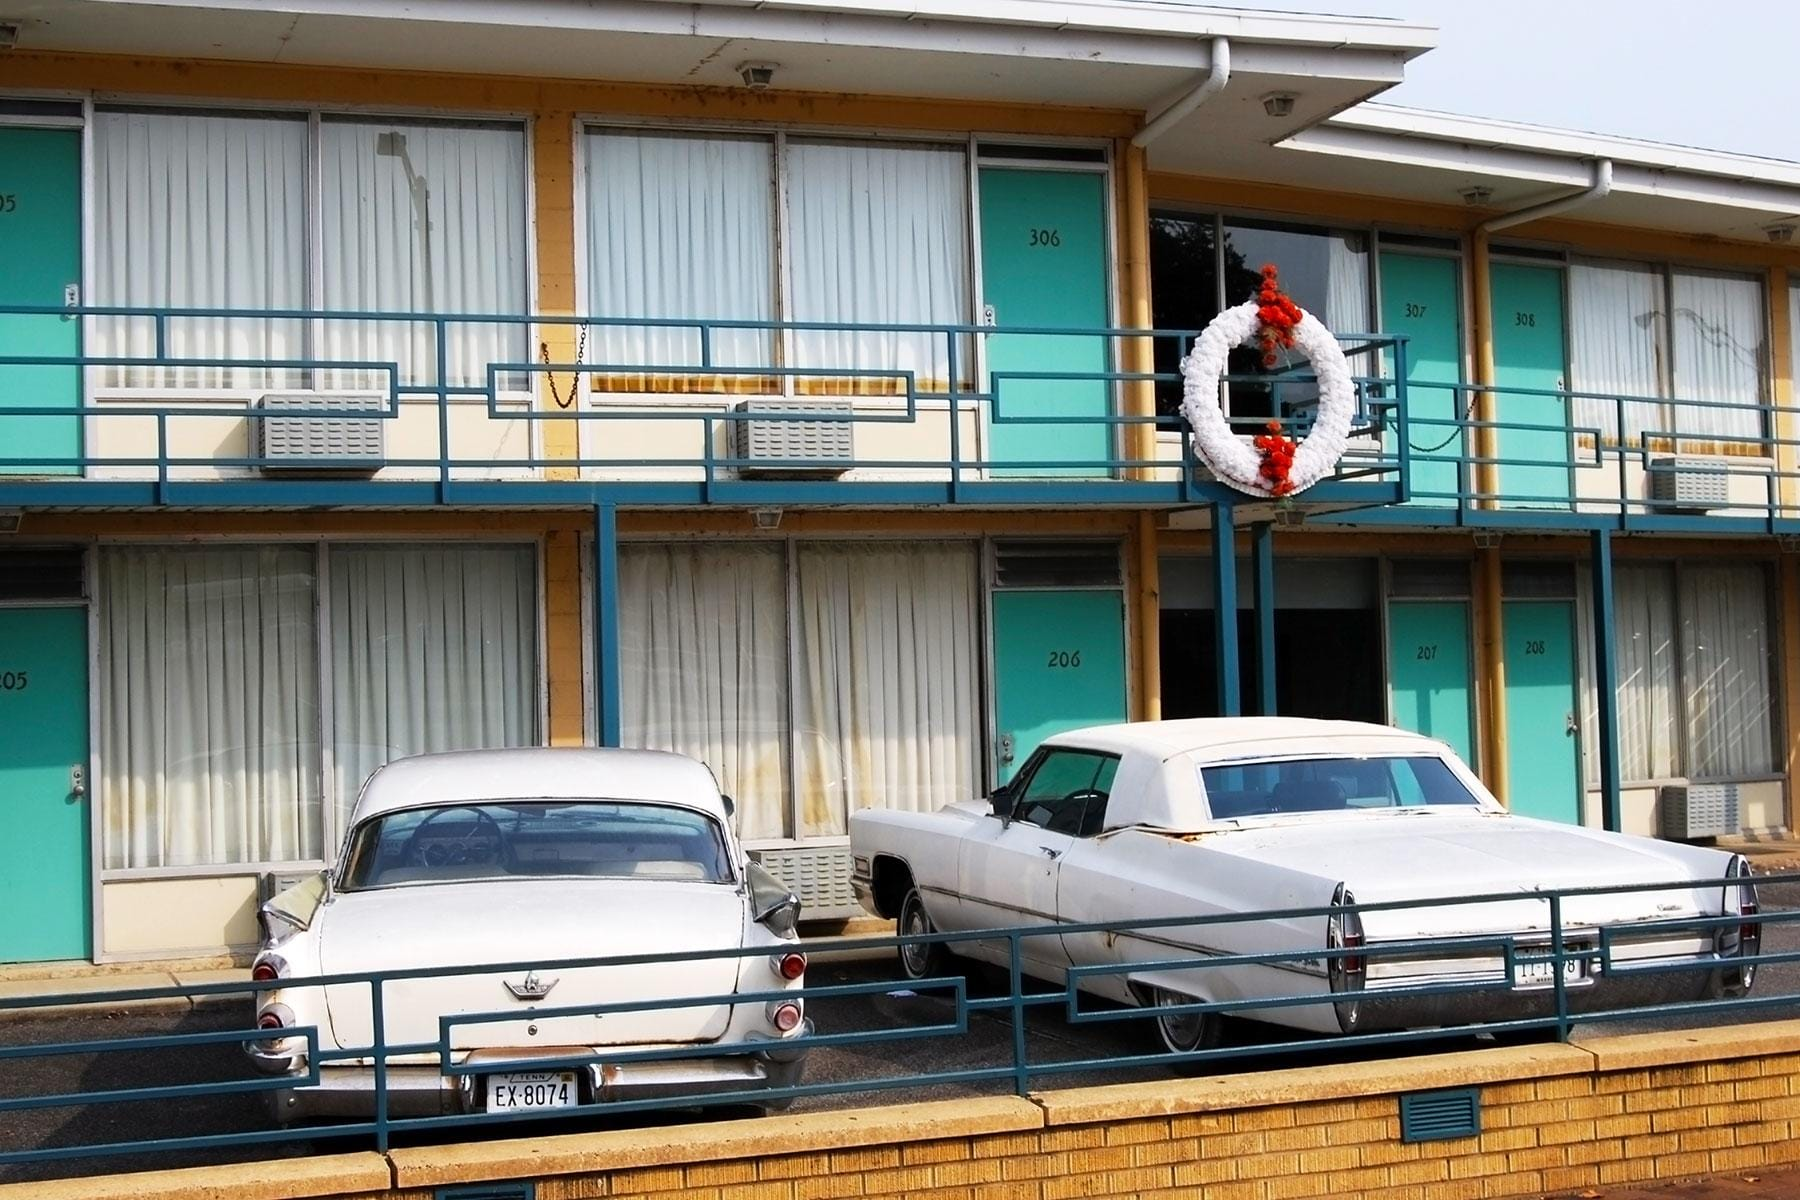 10 Stops on the Civil Rights Trail in Memphis